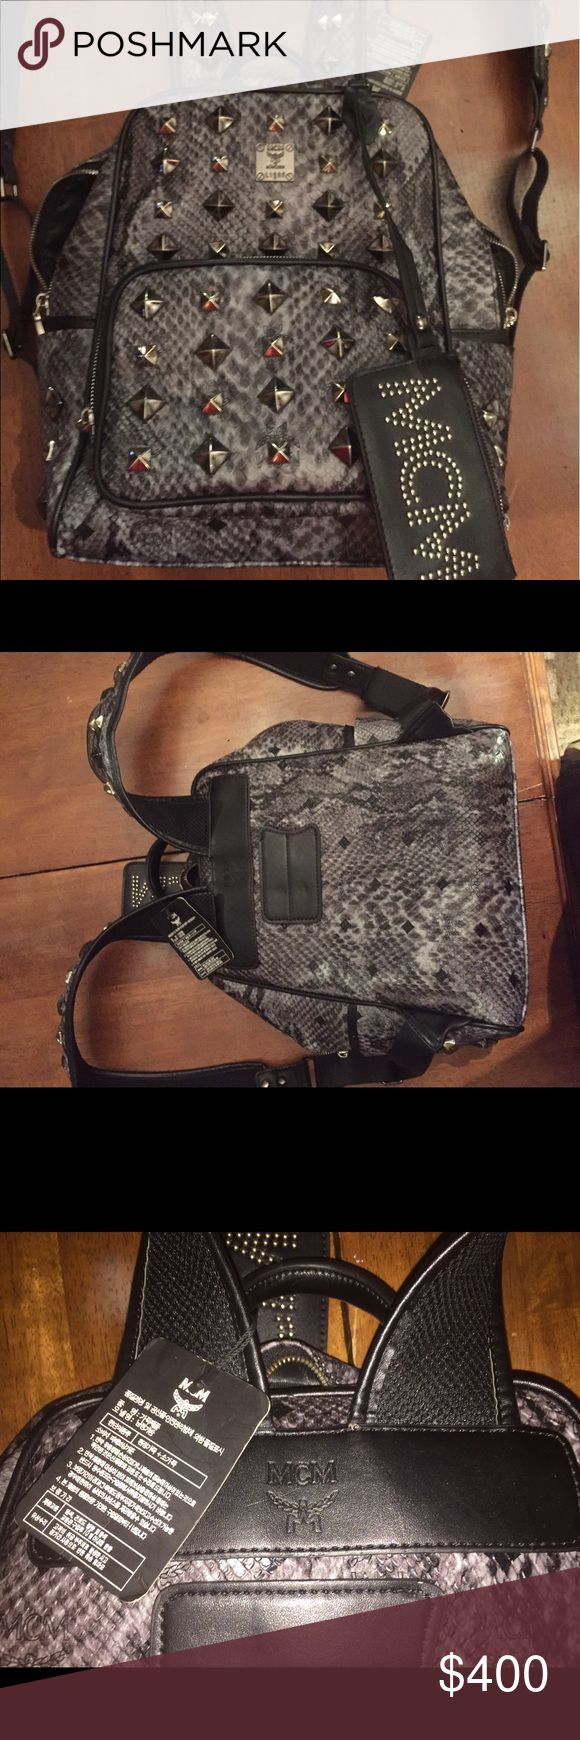 MCM small size bag Unisex bookbag good condition $400 OBO MCM Bags Backpacks